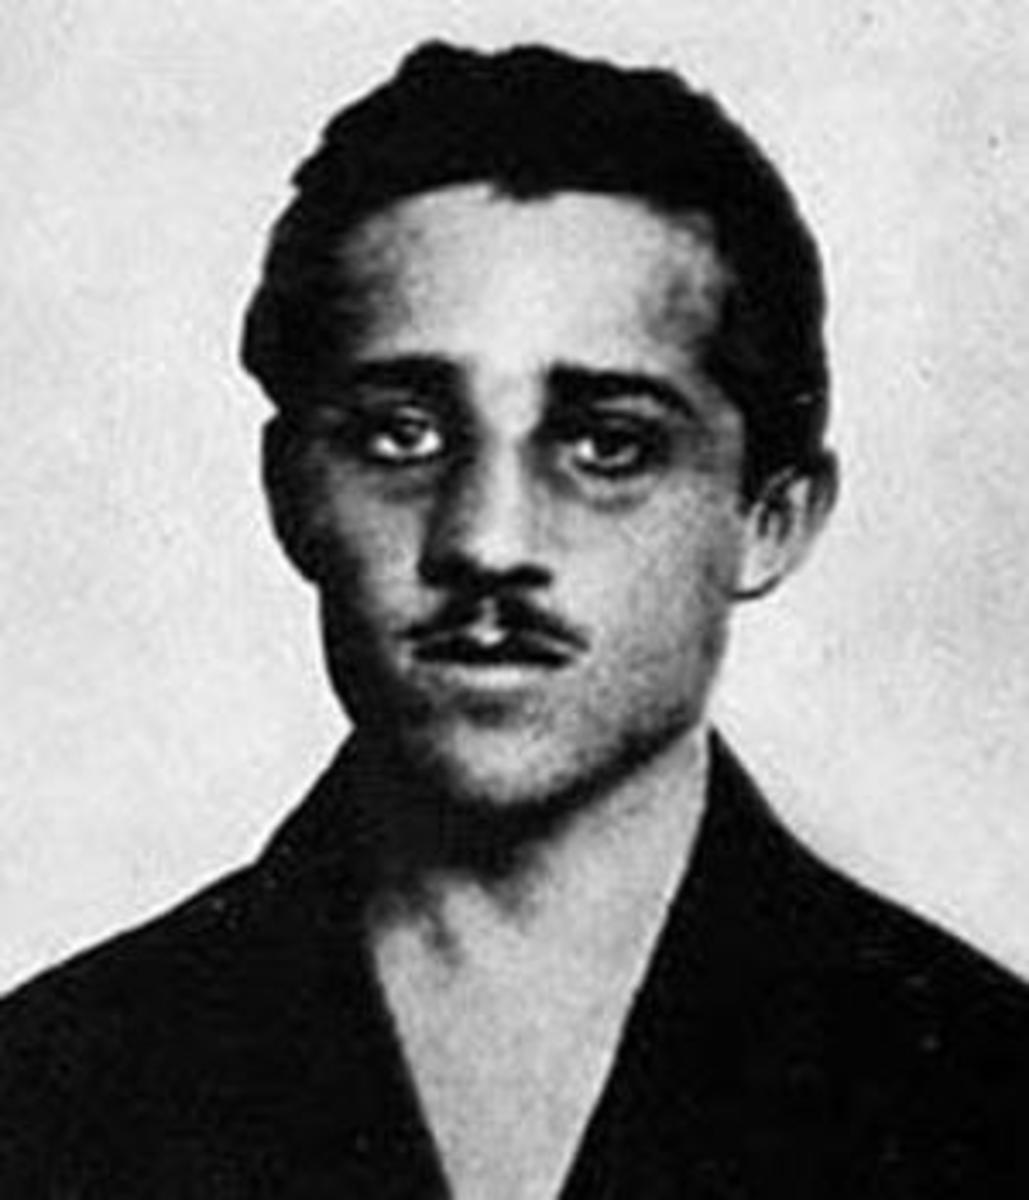 Princip taken into custody after shooting Archduke Franz Ferdinand his wife Sophie